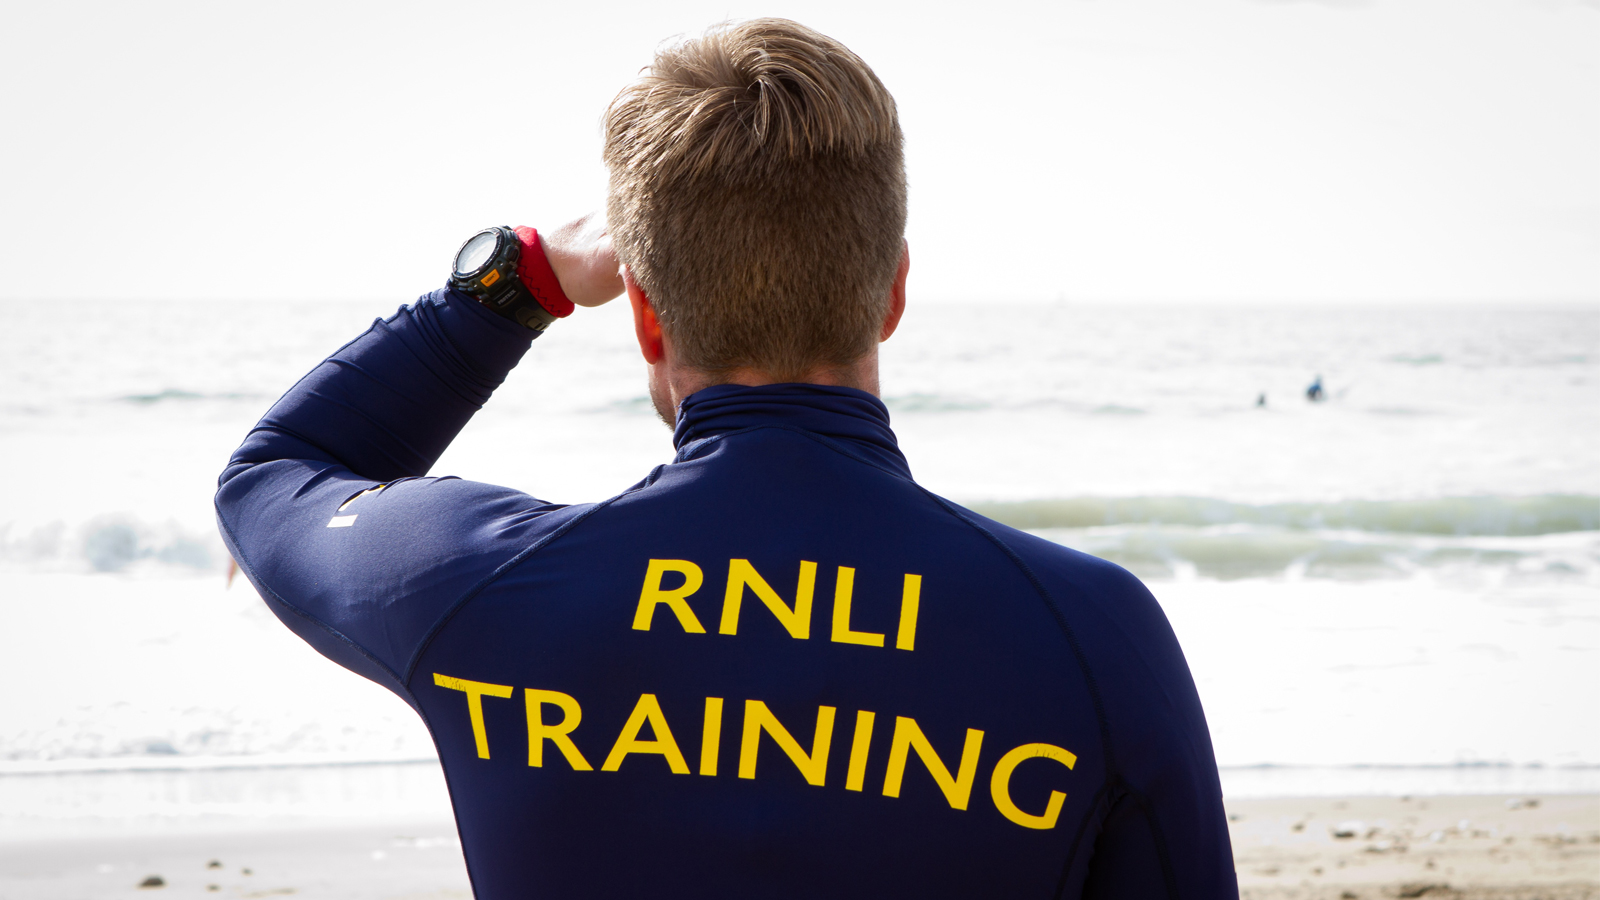 RNLI training in action